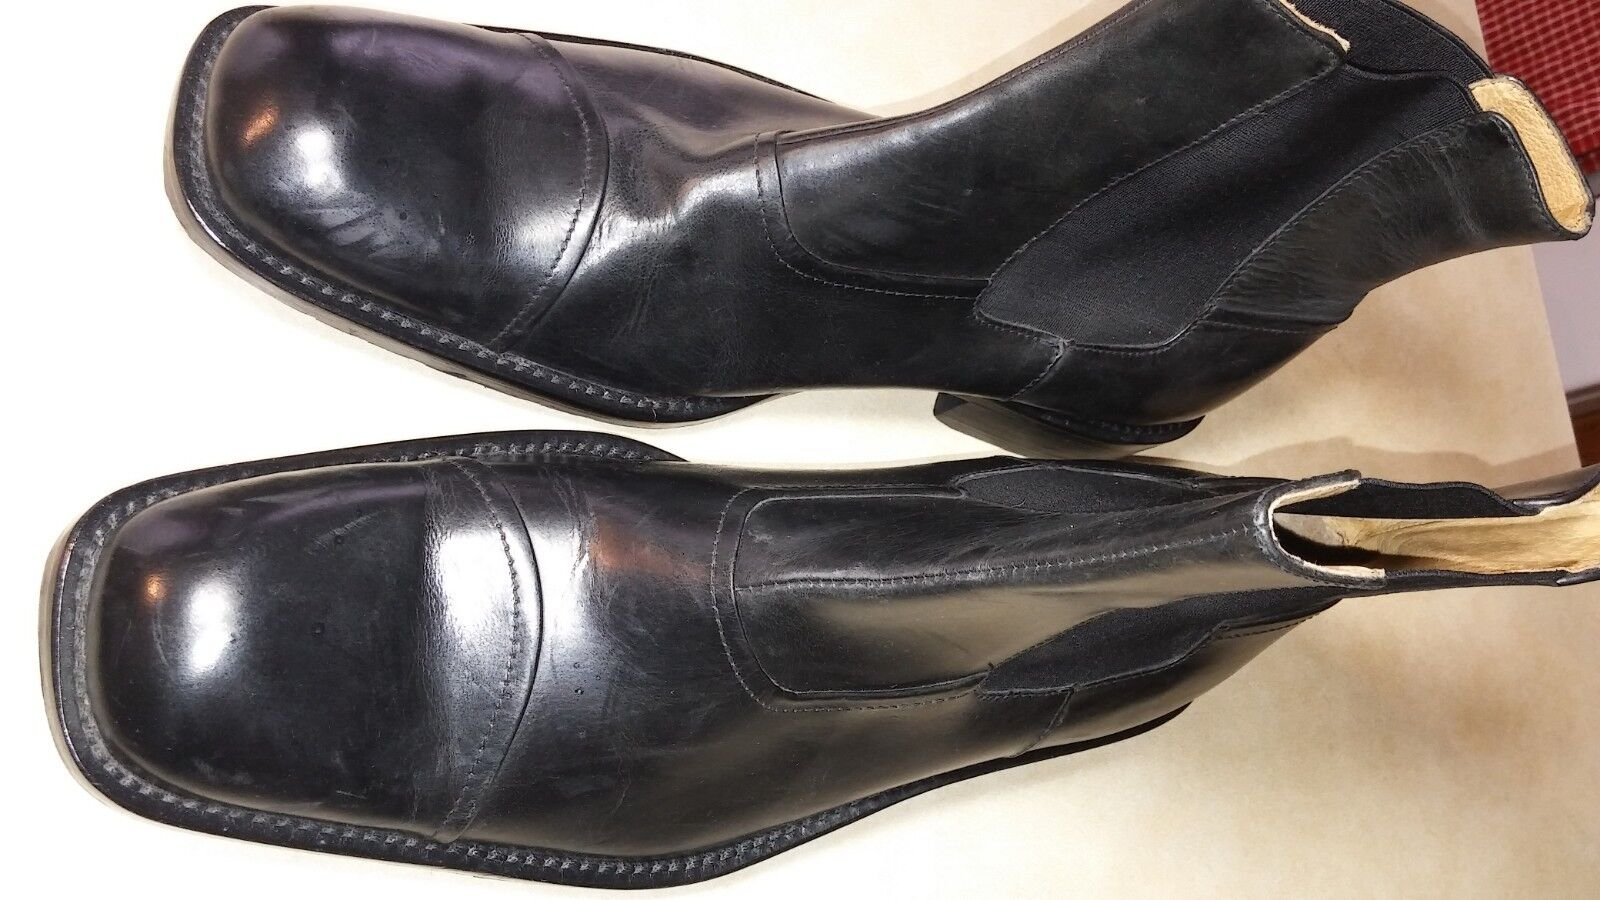 Kenneth Cole New York Men's Boots-  THINK IT OVER  - Black 10.5M